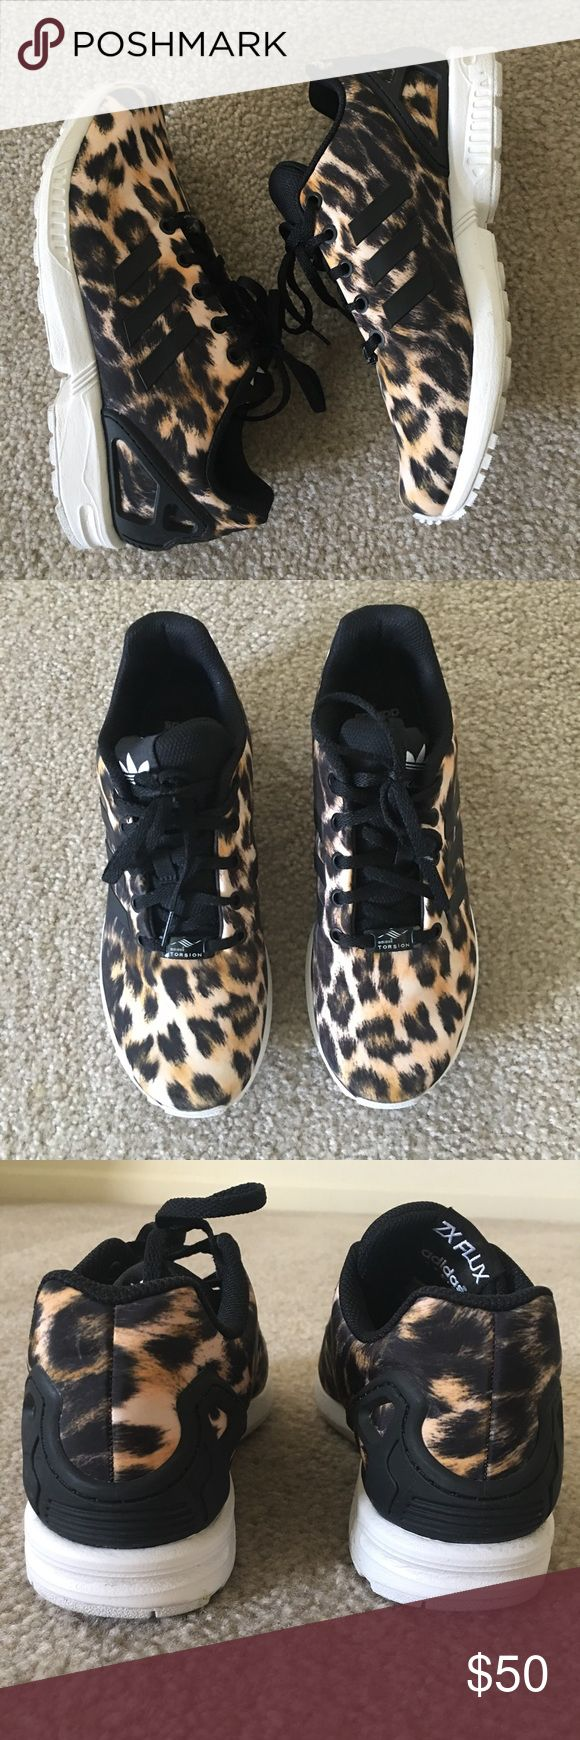 Leopard Print 6.5 Women's Adidas Torsion ZX Flux Very lightly worn Adidas ZX Flux Torsions for women's. Adidas Shoes Athletic Shoes